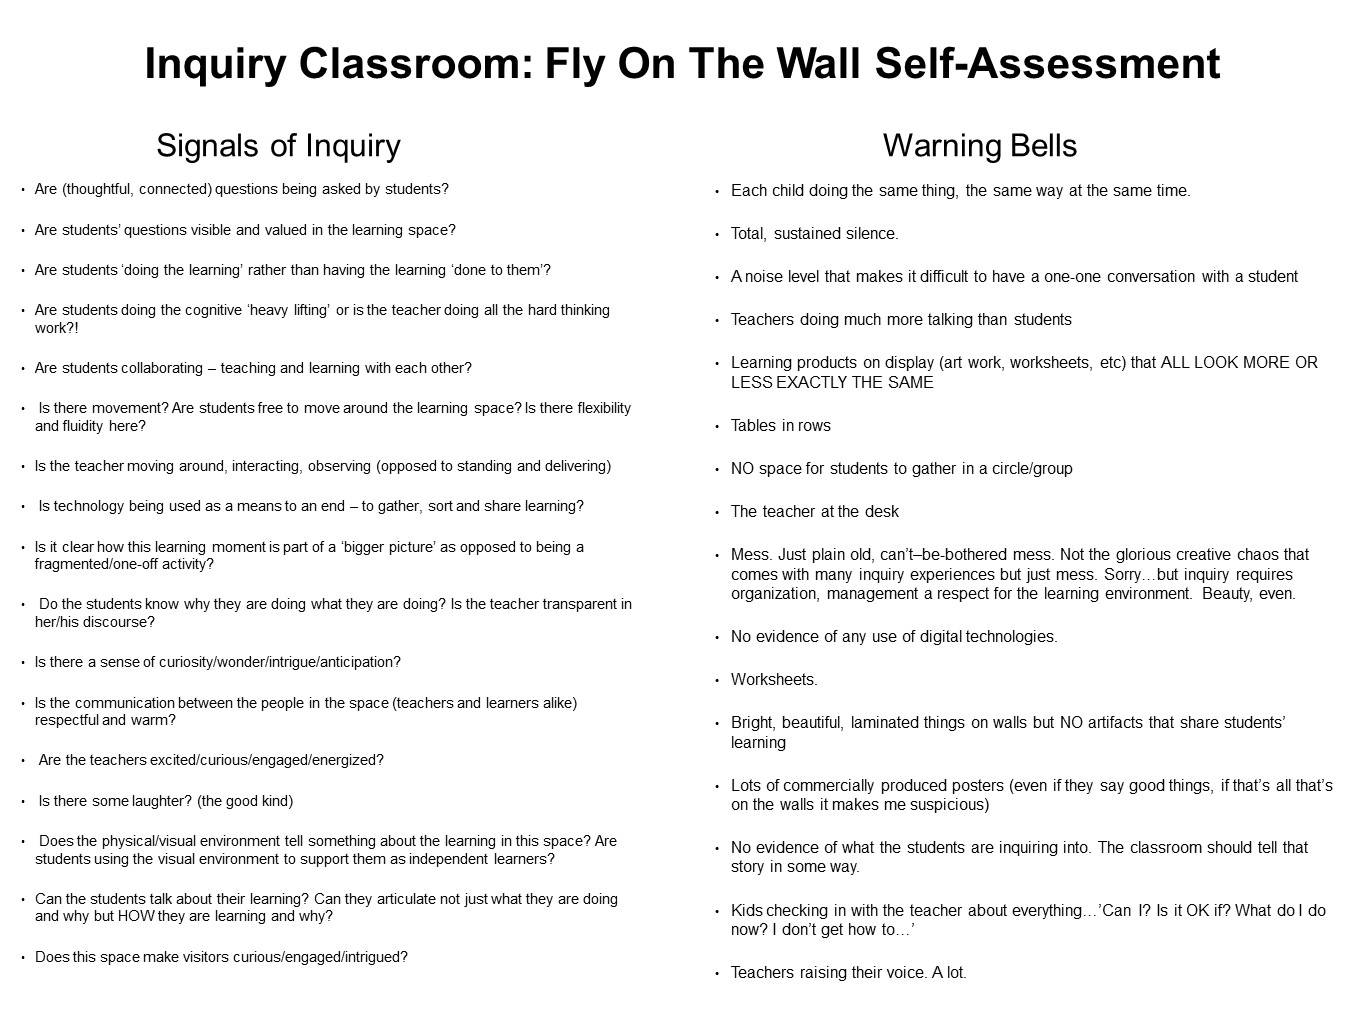 Inquiry Habitat Fly On The Wall Self Reflection Making